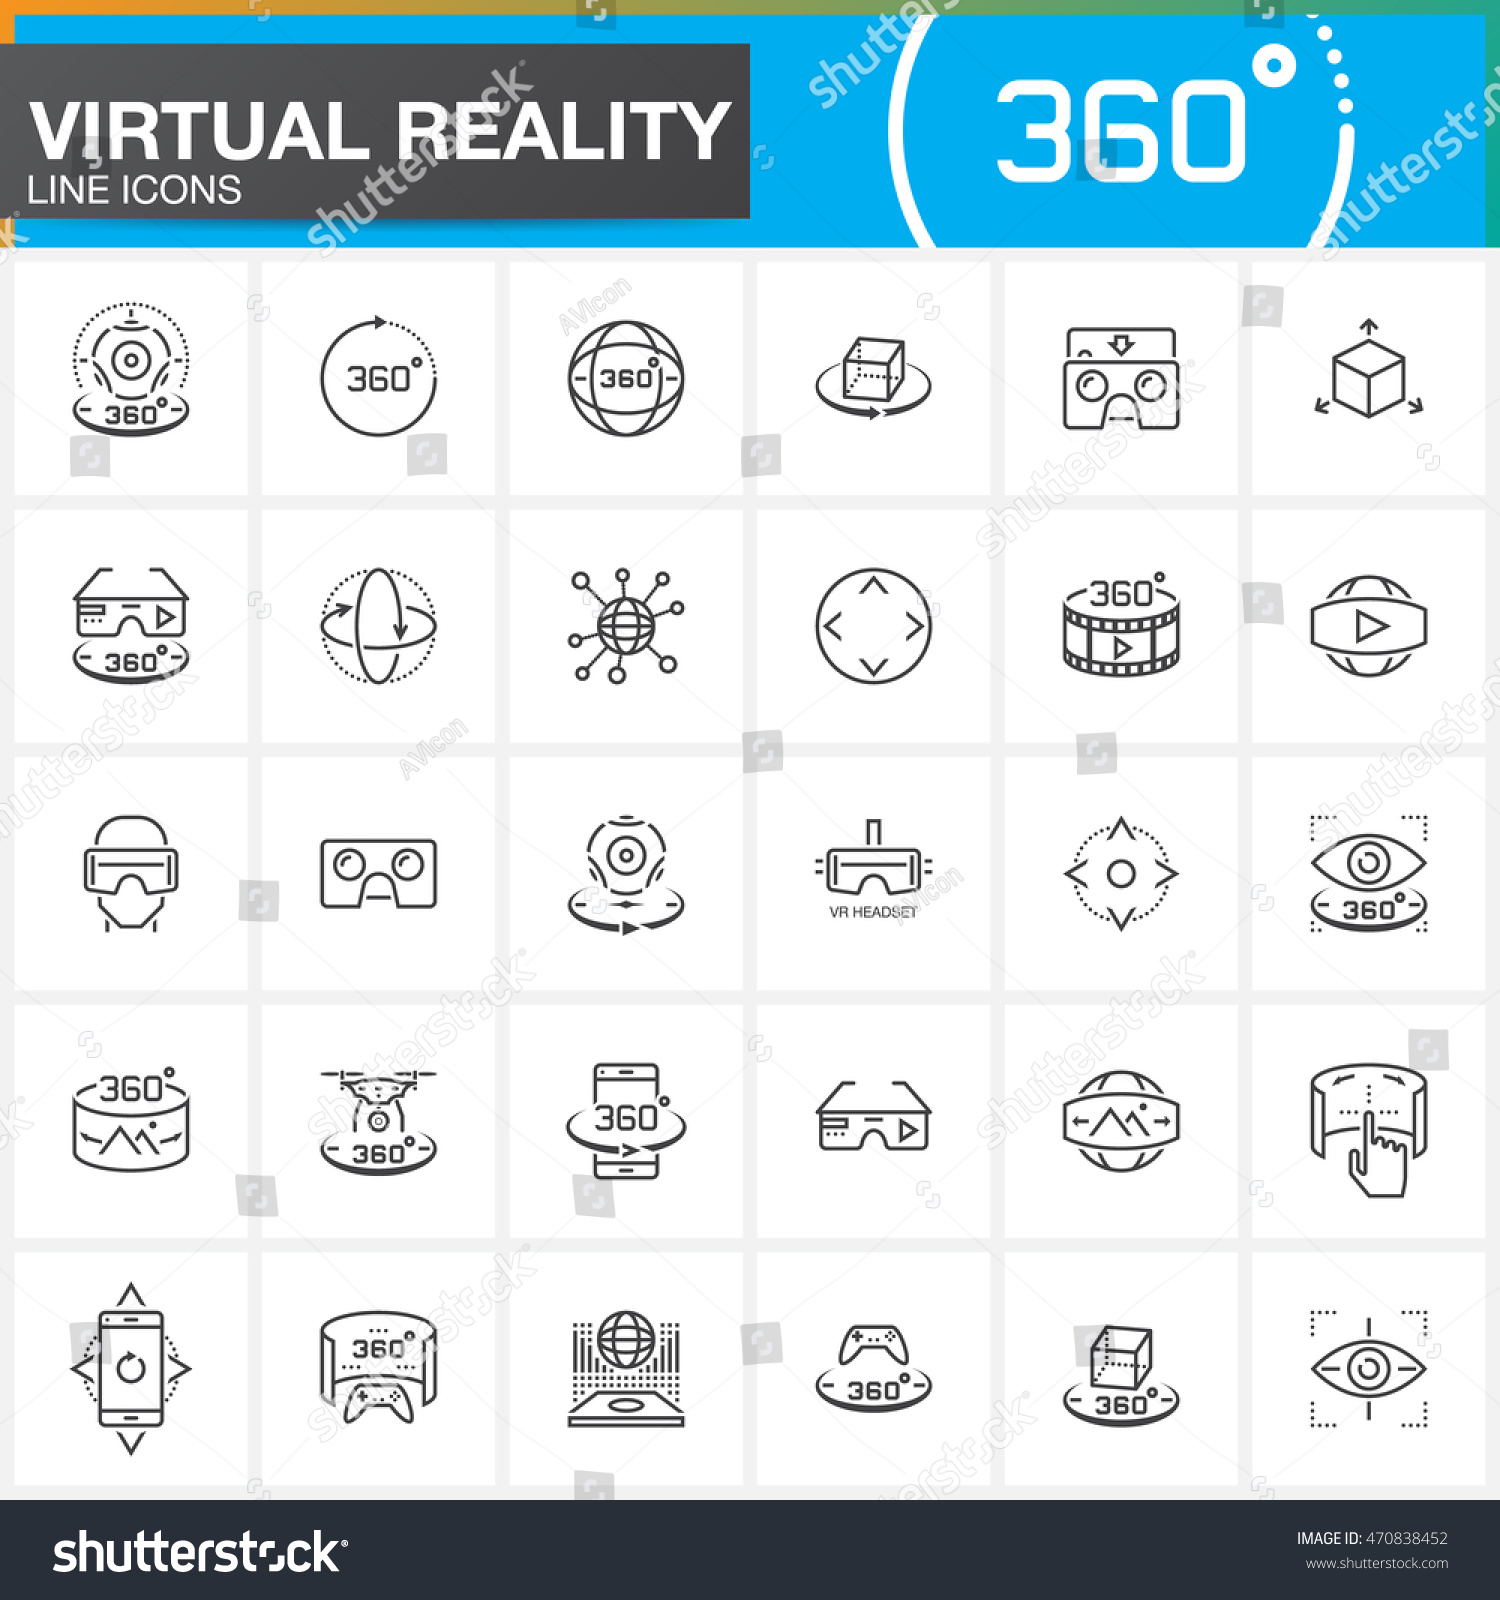 Virtual reality line icons set Innovation technologies AR glasses Head-mounted display VR gaming device Modern flat line design vector collection Outline logo illustration concept